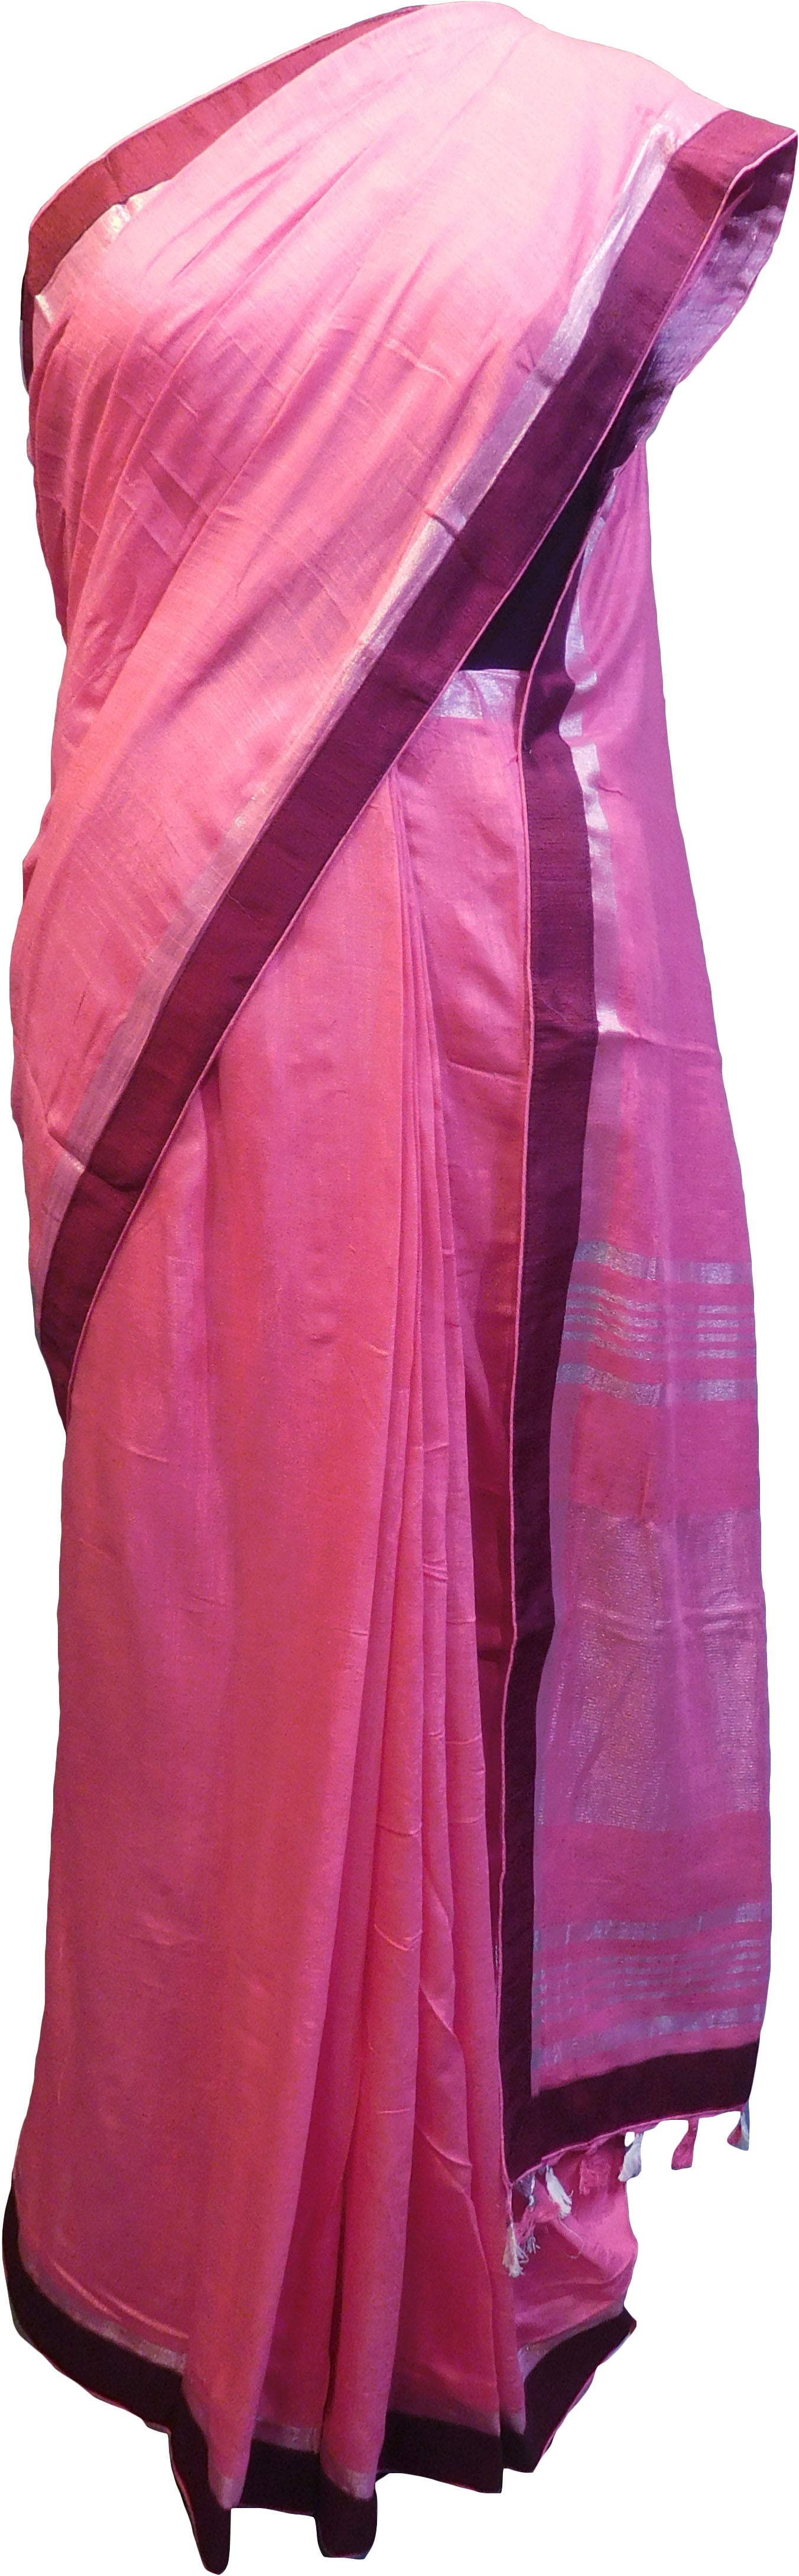 SMSAREE Pink Designer Wedding Partywear Handloom Linen Thread & Zari Hand Embroidery Work Bridal Saree Sari With Blouse Piece F128